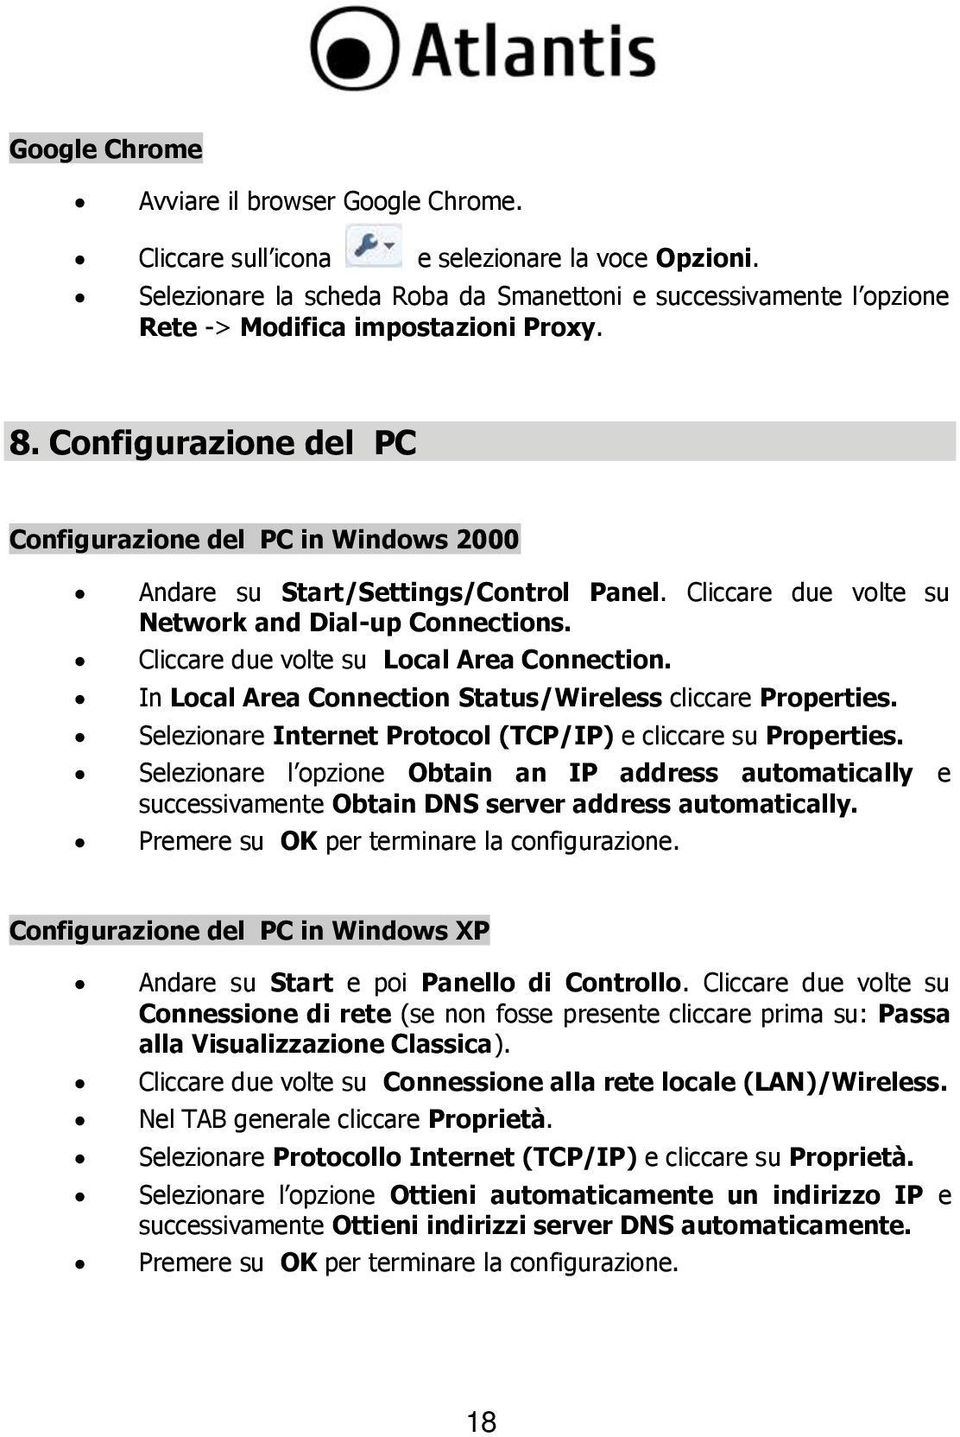 Configurazione del PC Configurazione del PC in Windows 2000 Andare su Start/Settings/Control Panel. Cliccare due volte su Network and Dial-up Connections. Cliccare due volte su Local Area Connection.